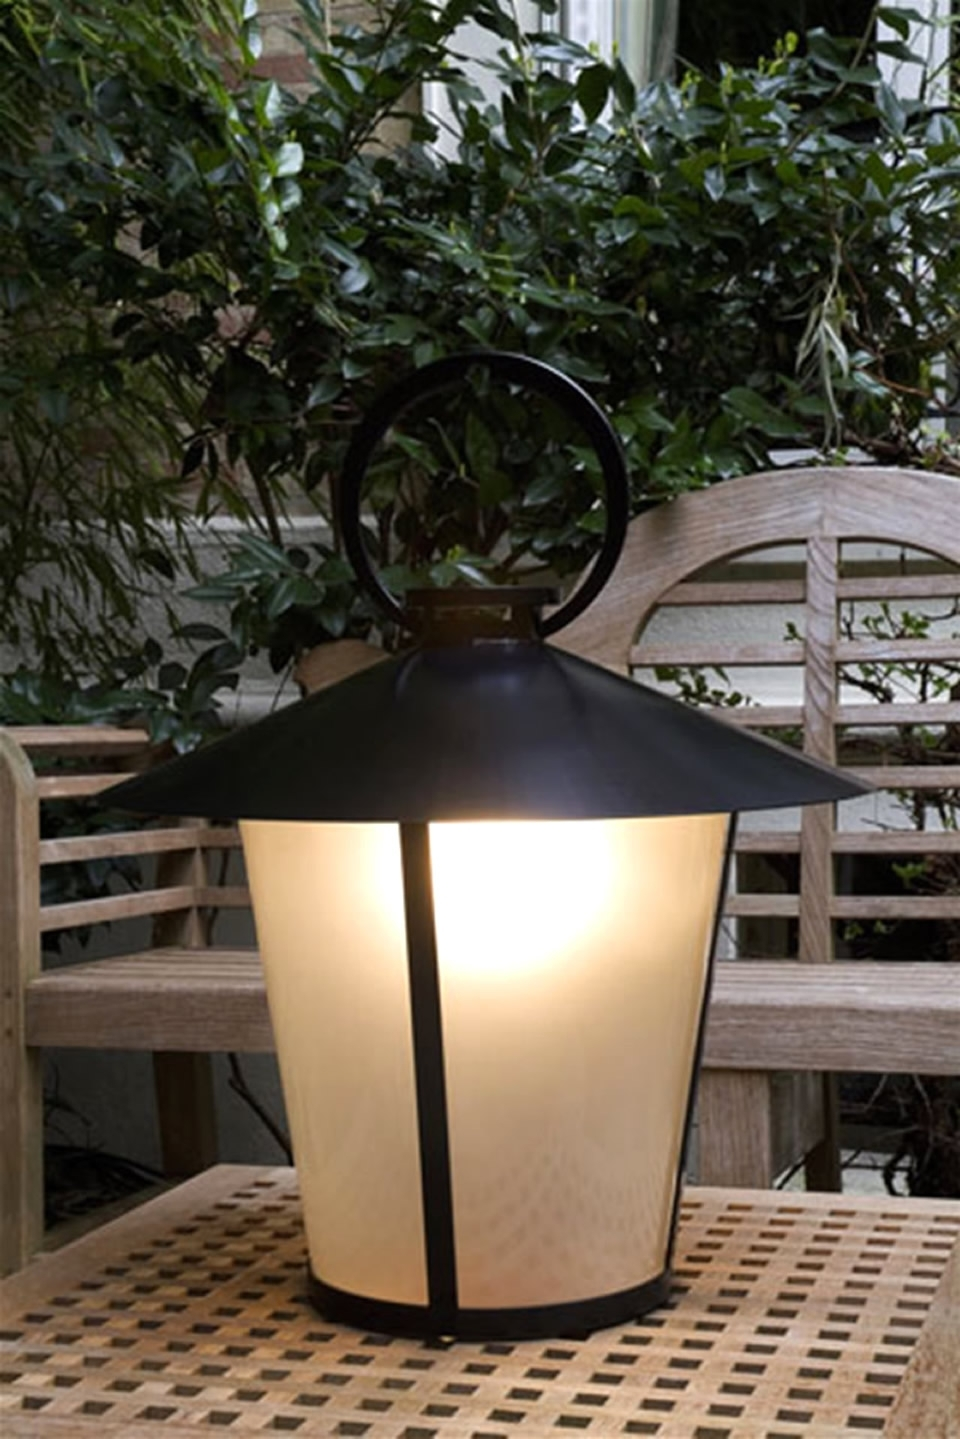 Electric Outdoor Lighting Garden – Lawsonreport #b8204F584123 Within Widely Used Electric Outdoor Lighting Garden (View 8 of 20)